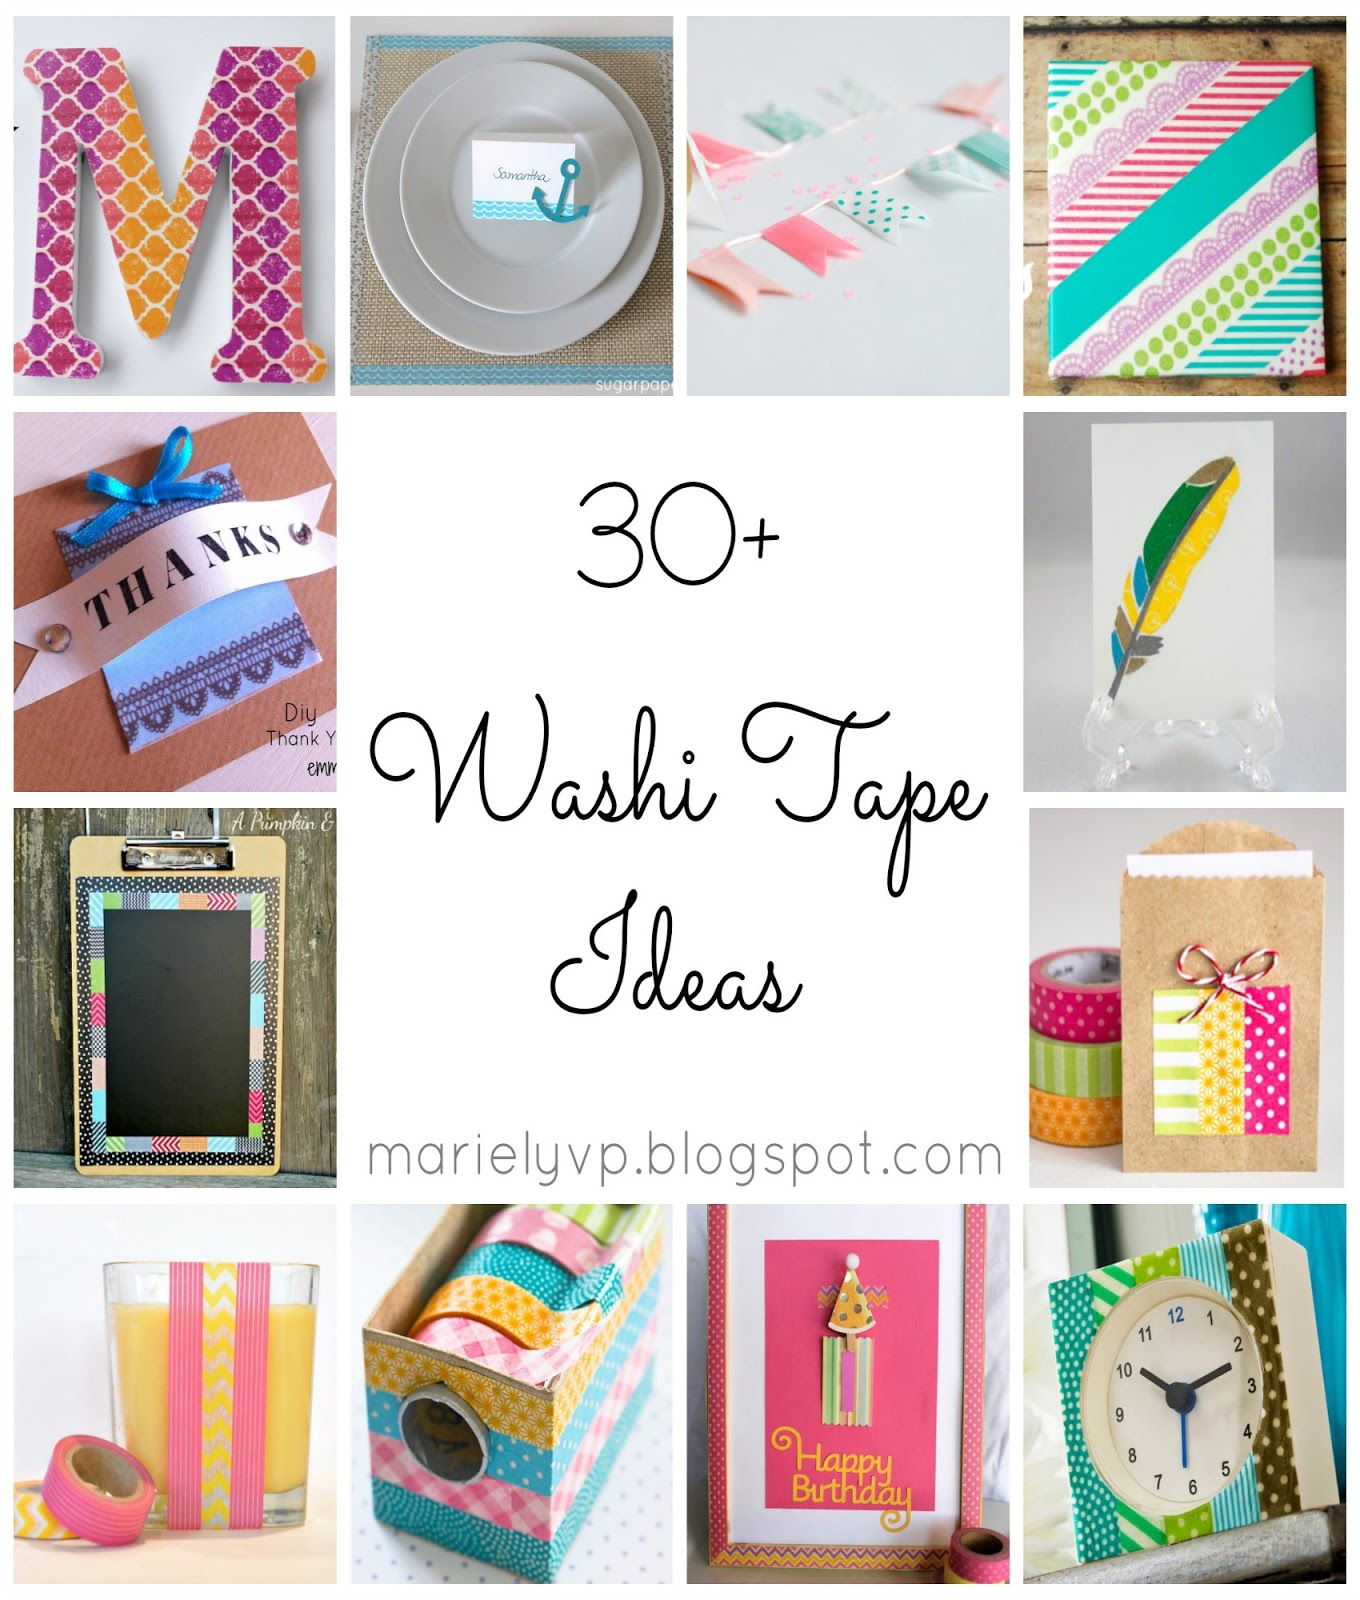 washi tape ideas we read 30 washi ideas up 12622